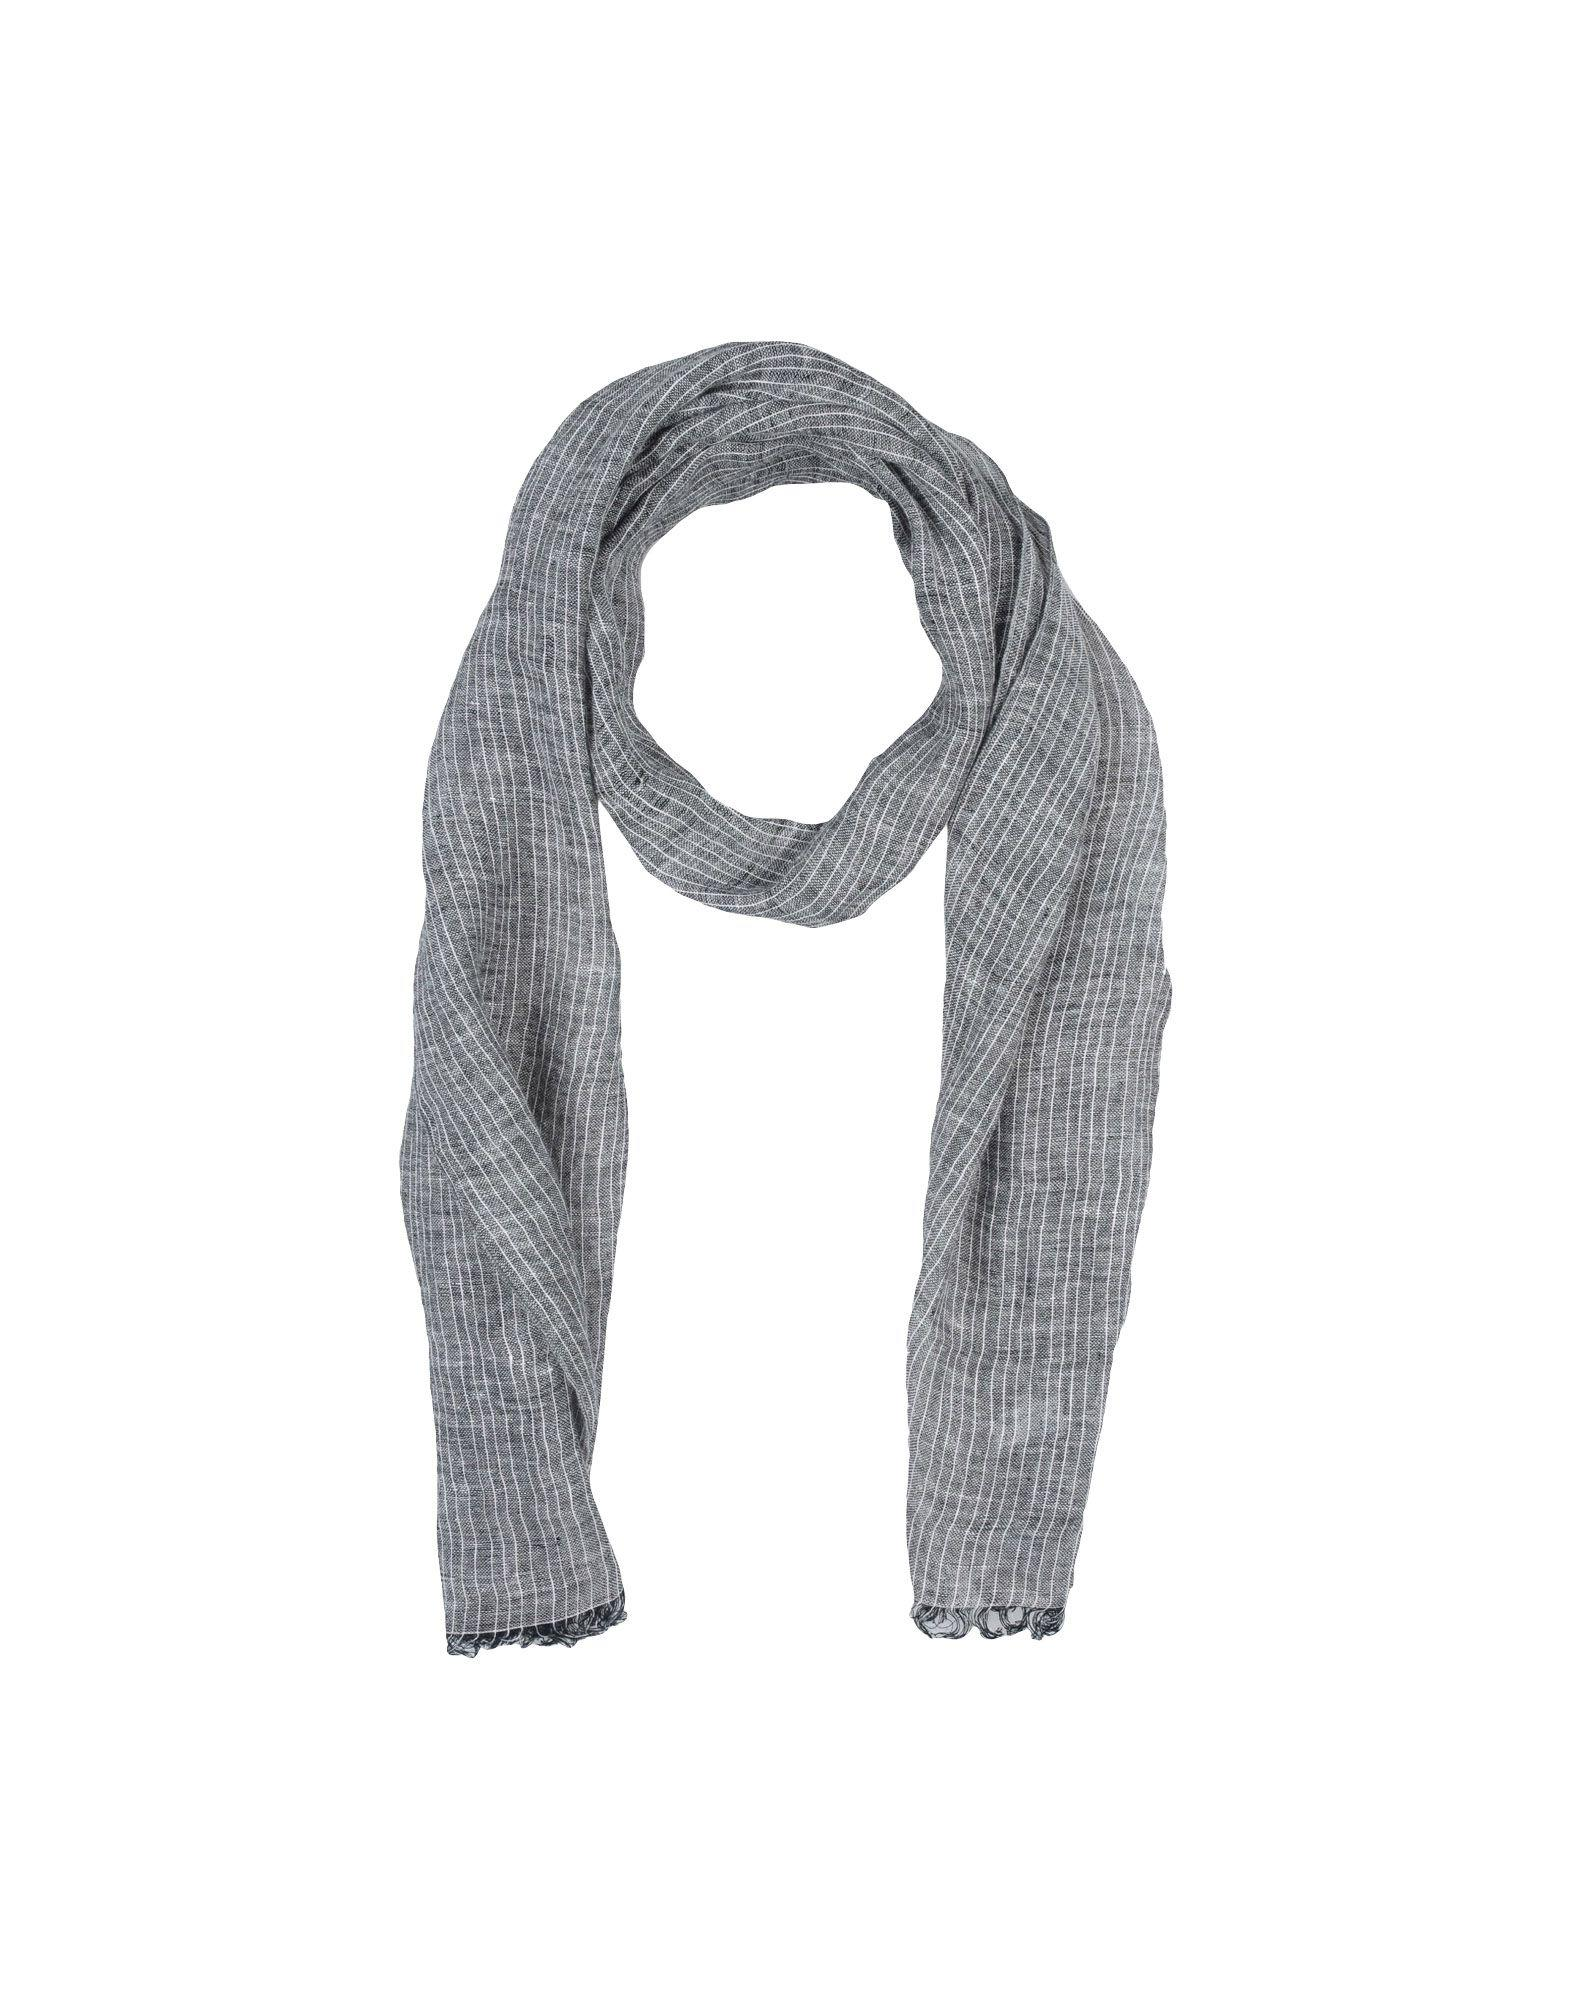 ACCESSORIES - Oblong scarves Officina 36 8BtUKX